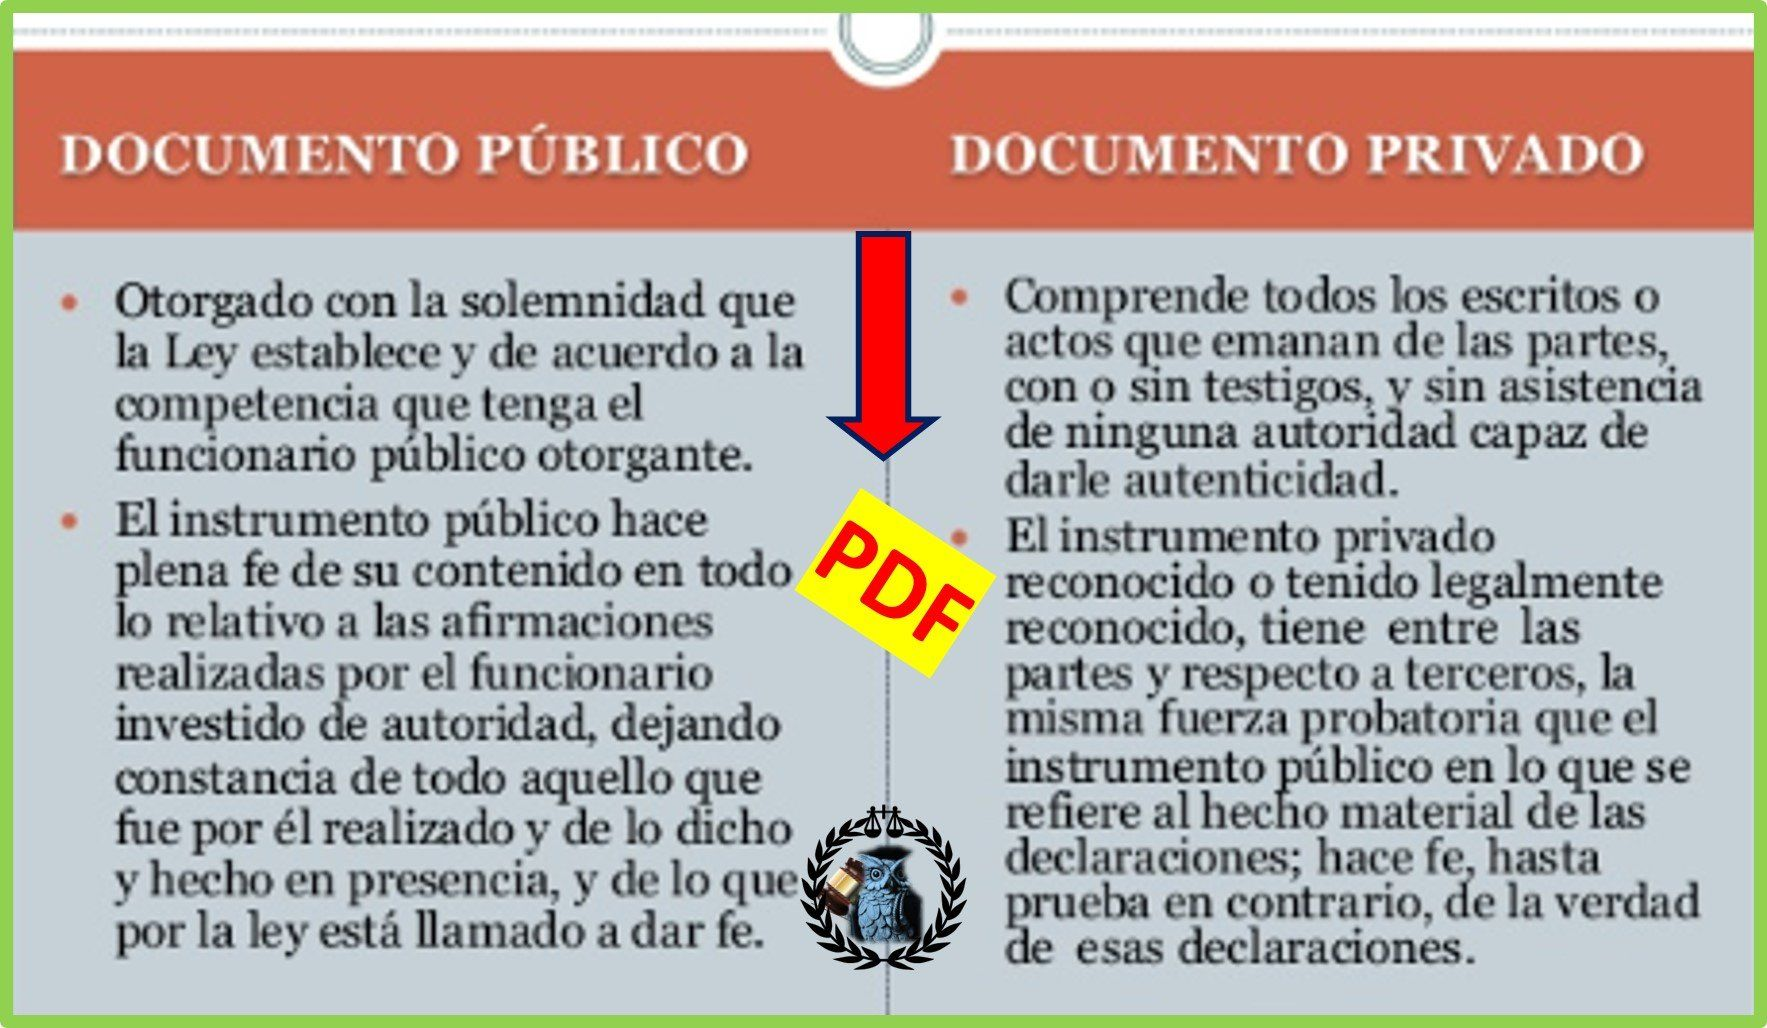 Photo of Documentos públicos y privados